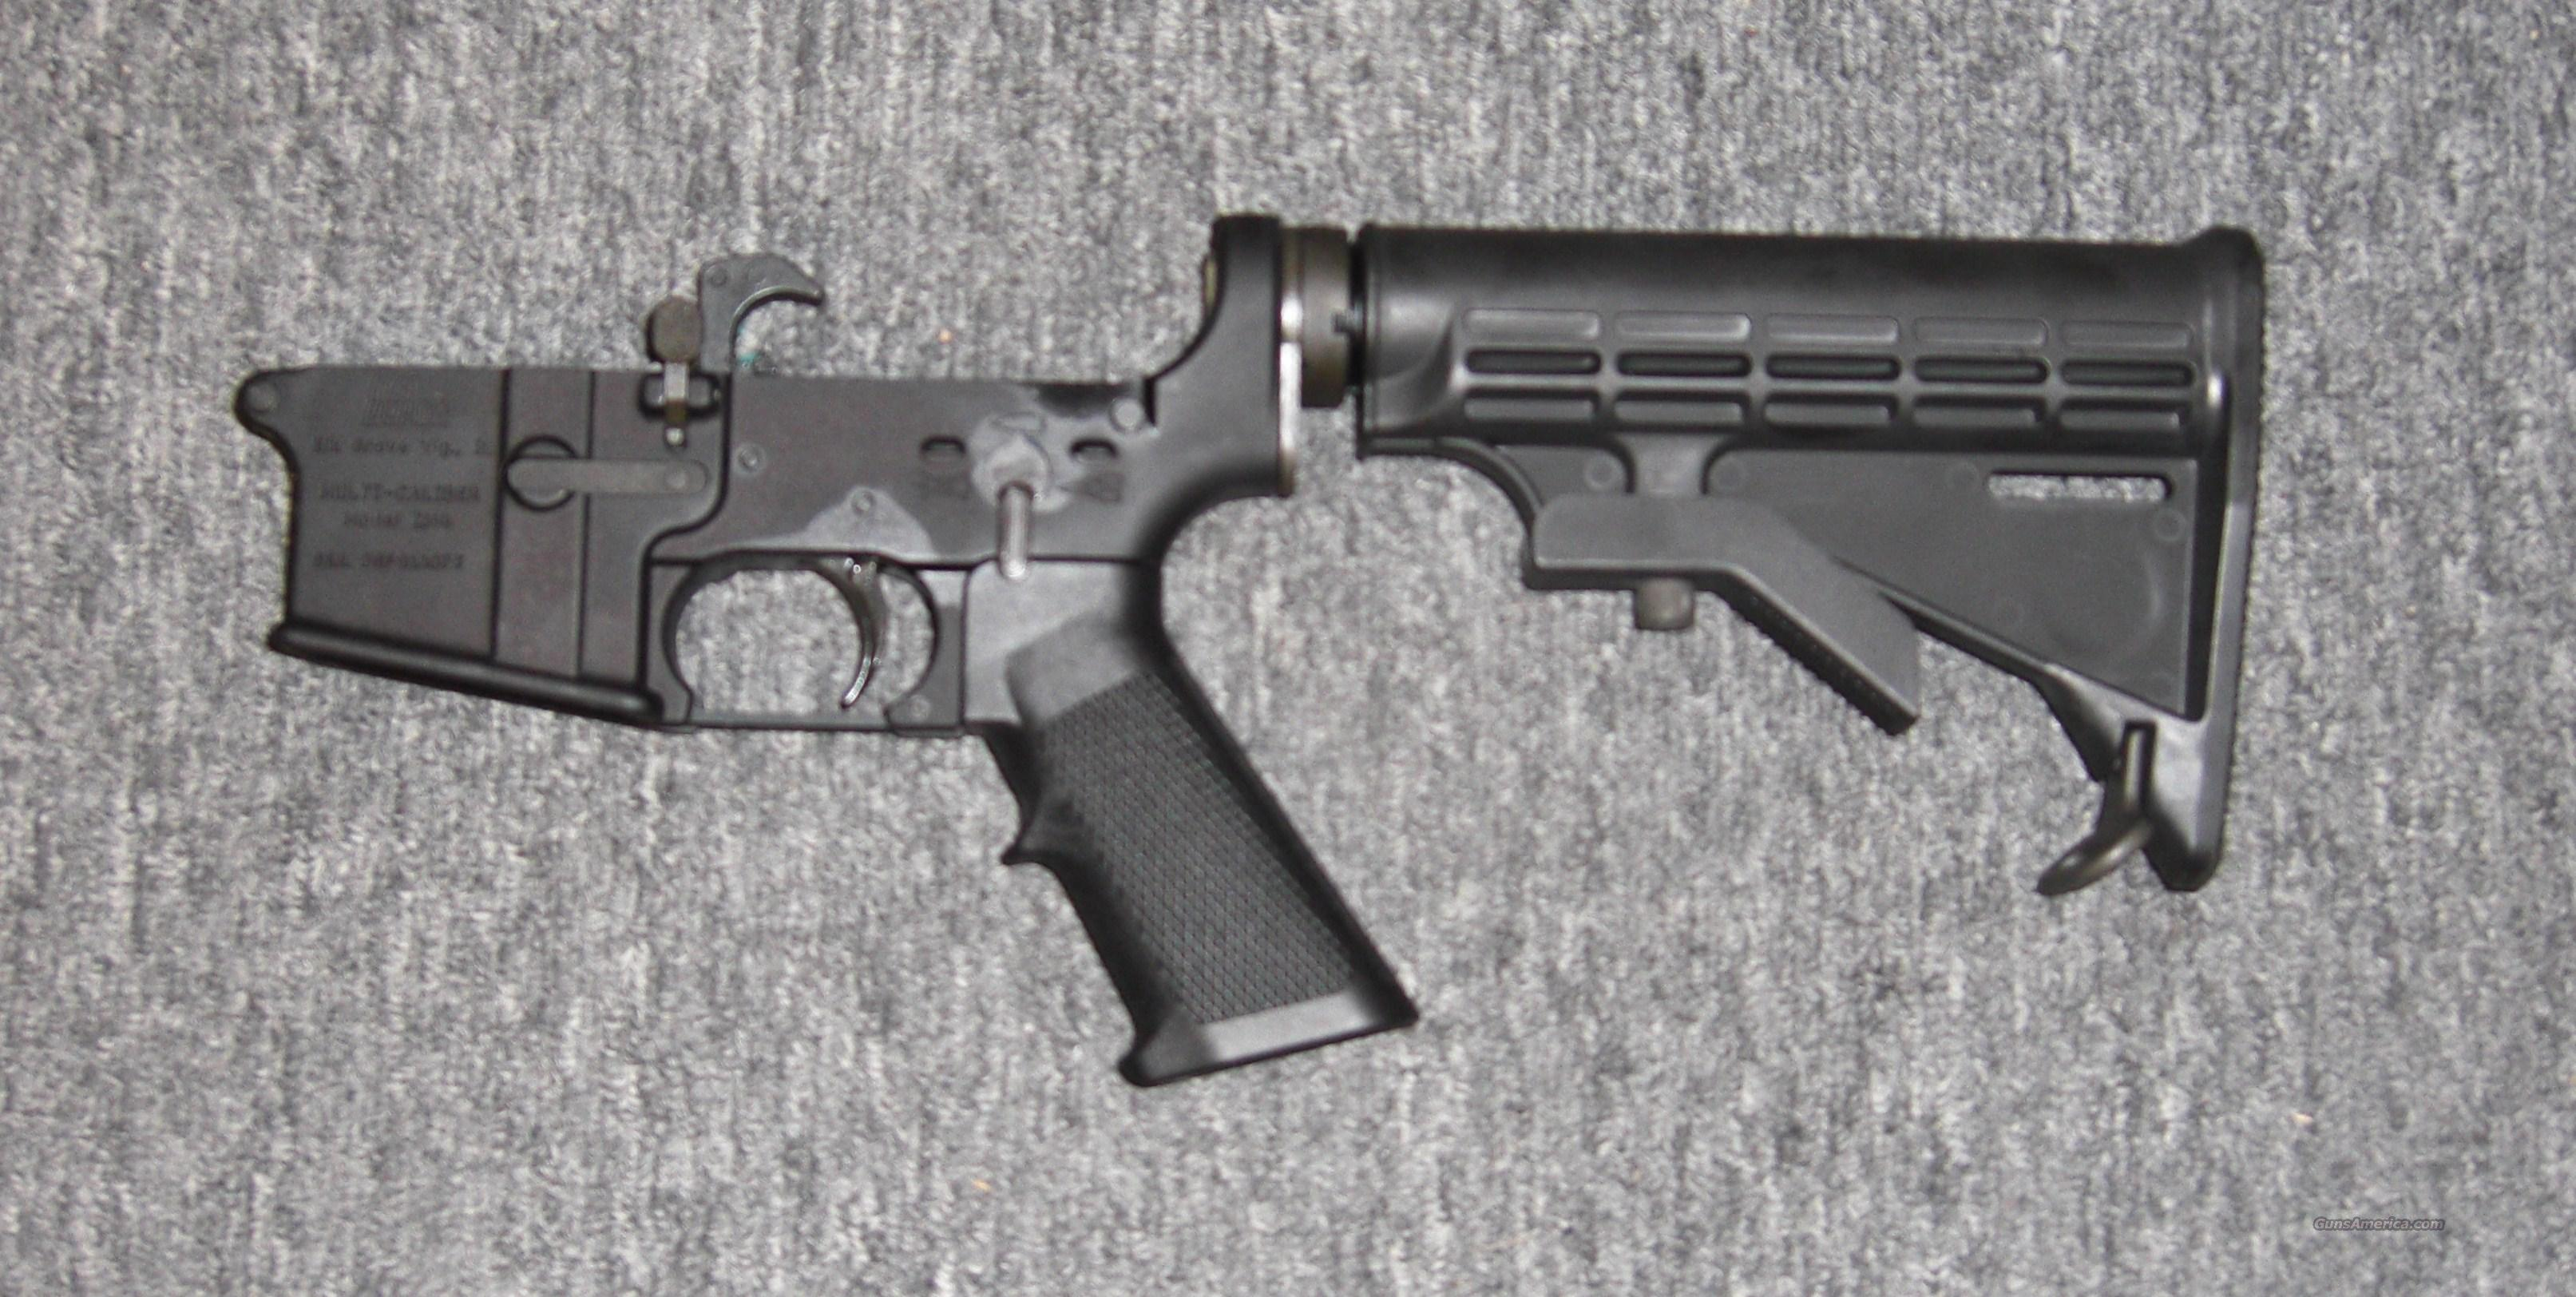 DSArms complete lower w/collapsible stock, trigger group  Guns > Rifles > DSA Rifles (DS Arms) > AR-15 type